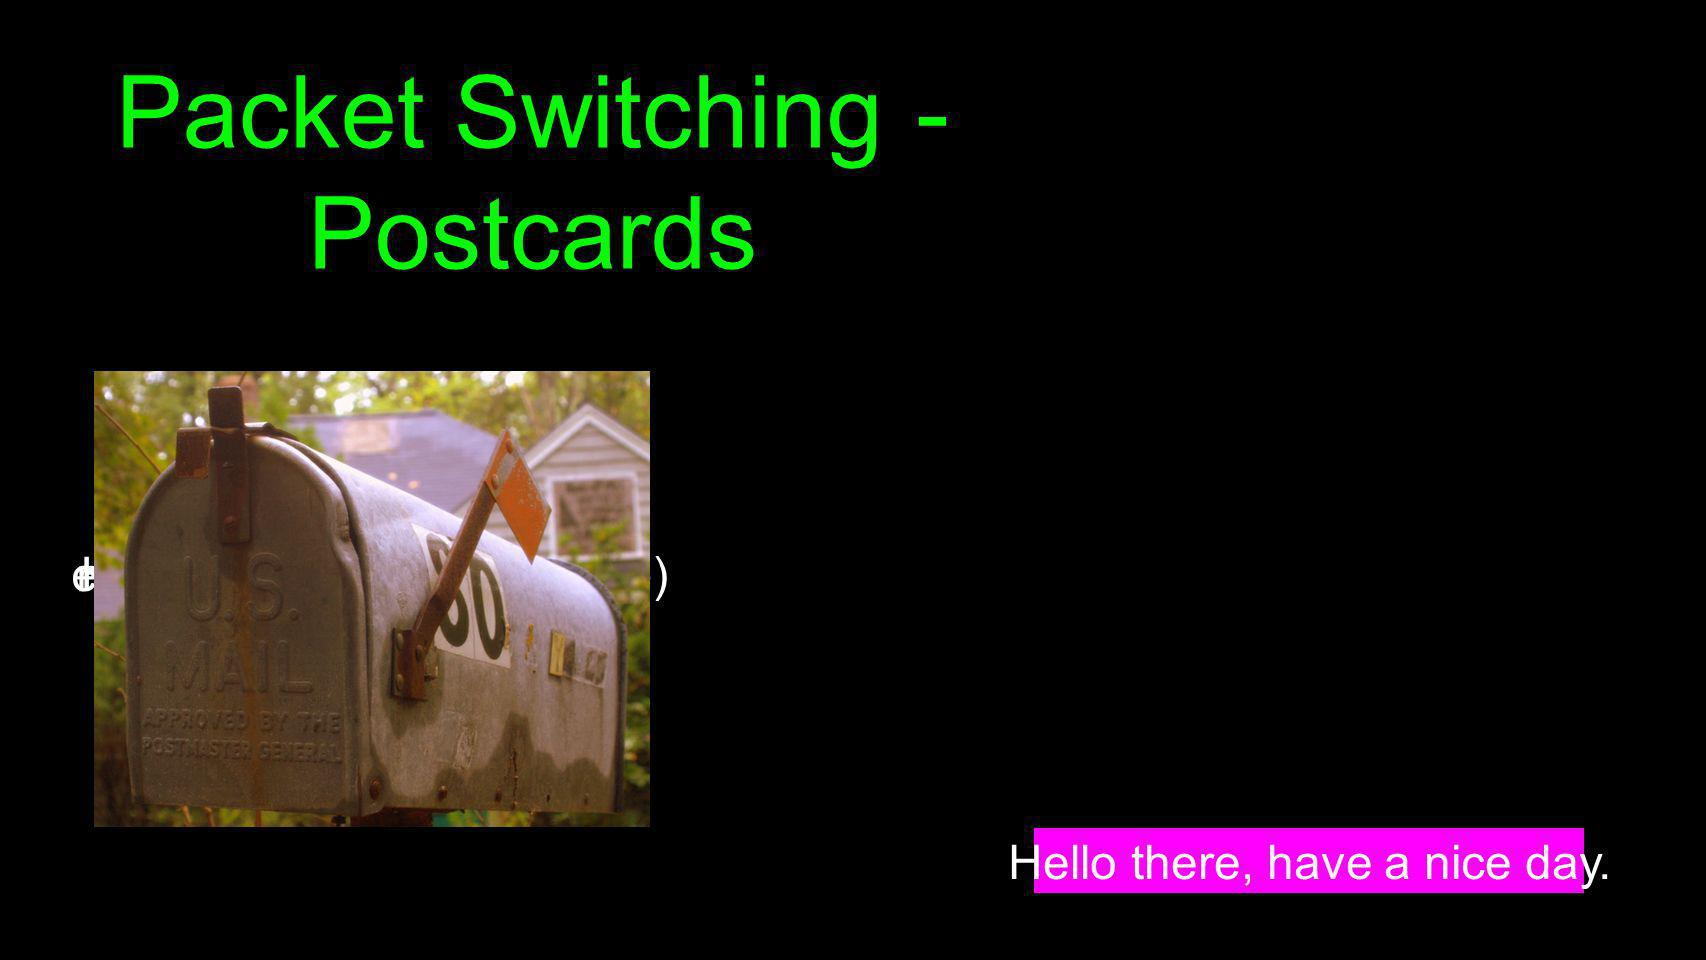 Packet Switching - Postcards Hello there, have a nice day. Hello ther (1, csev, daphne)e, have a (2, csev, daphne) nice day. (3, csev, daphne)